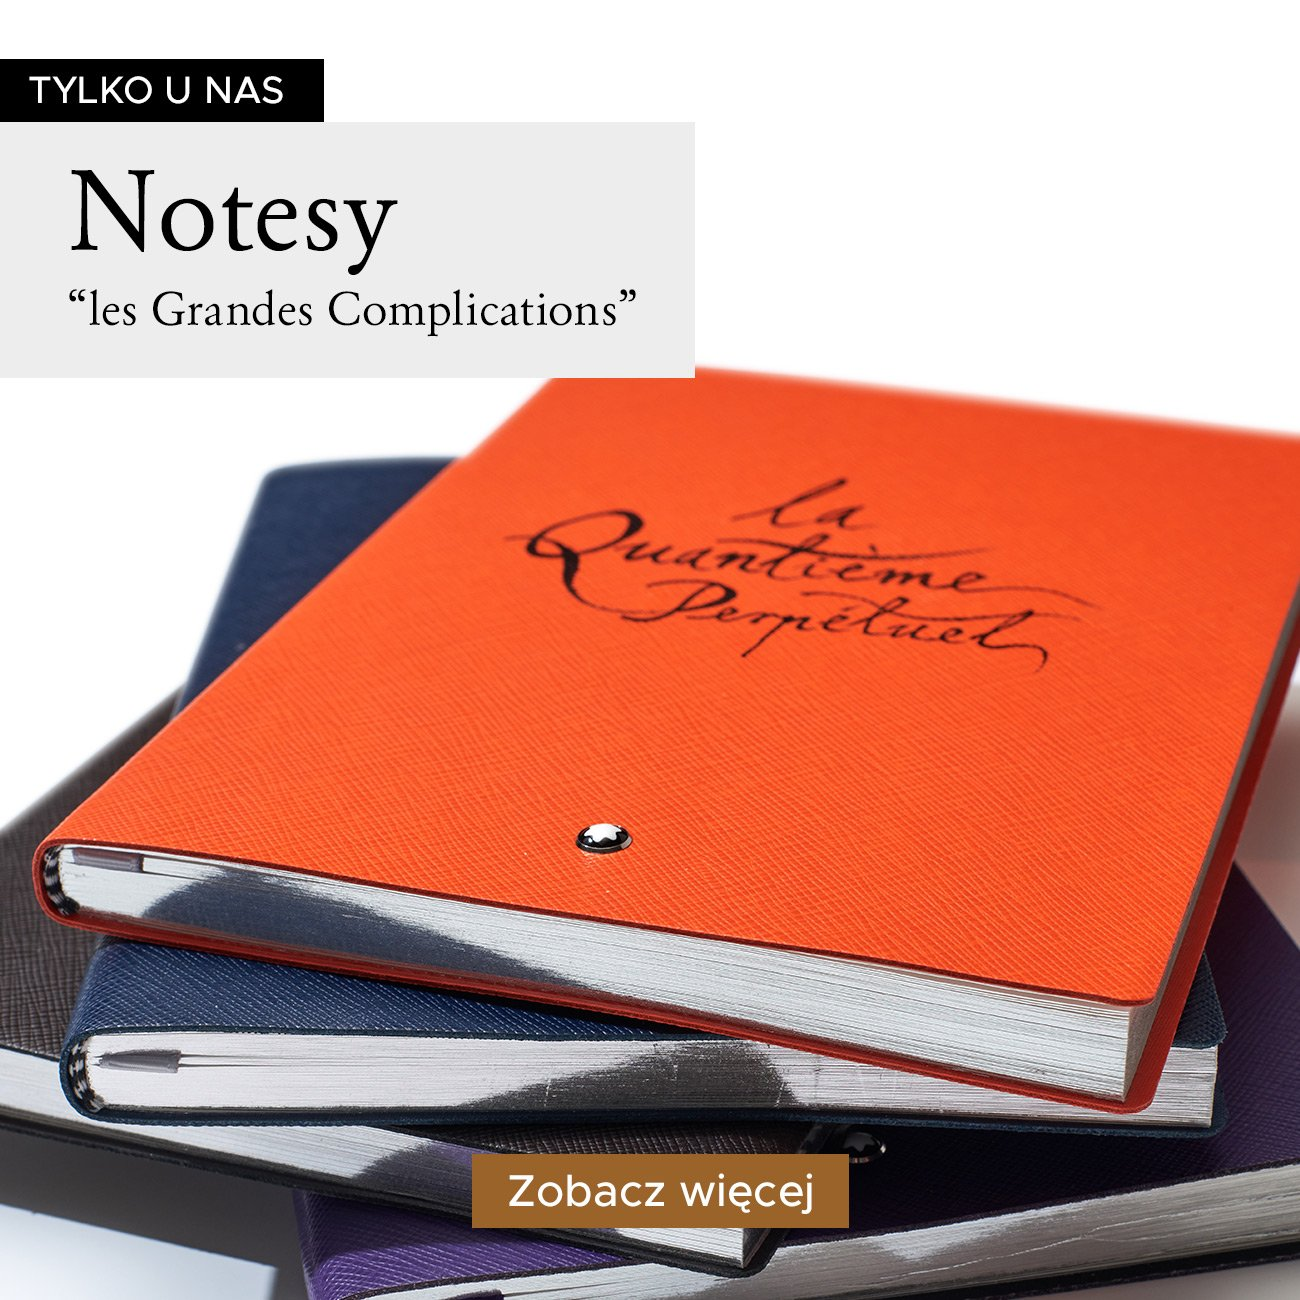 Notesy 'les Grandes Complications'